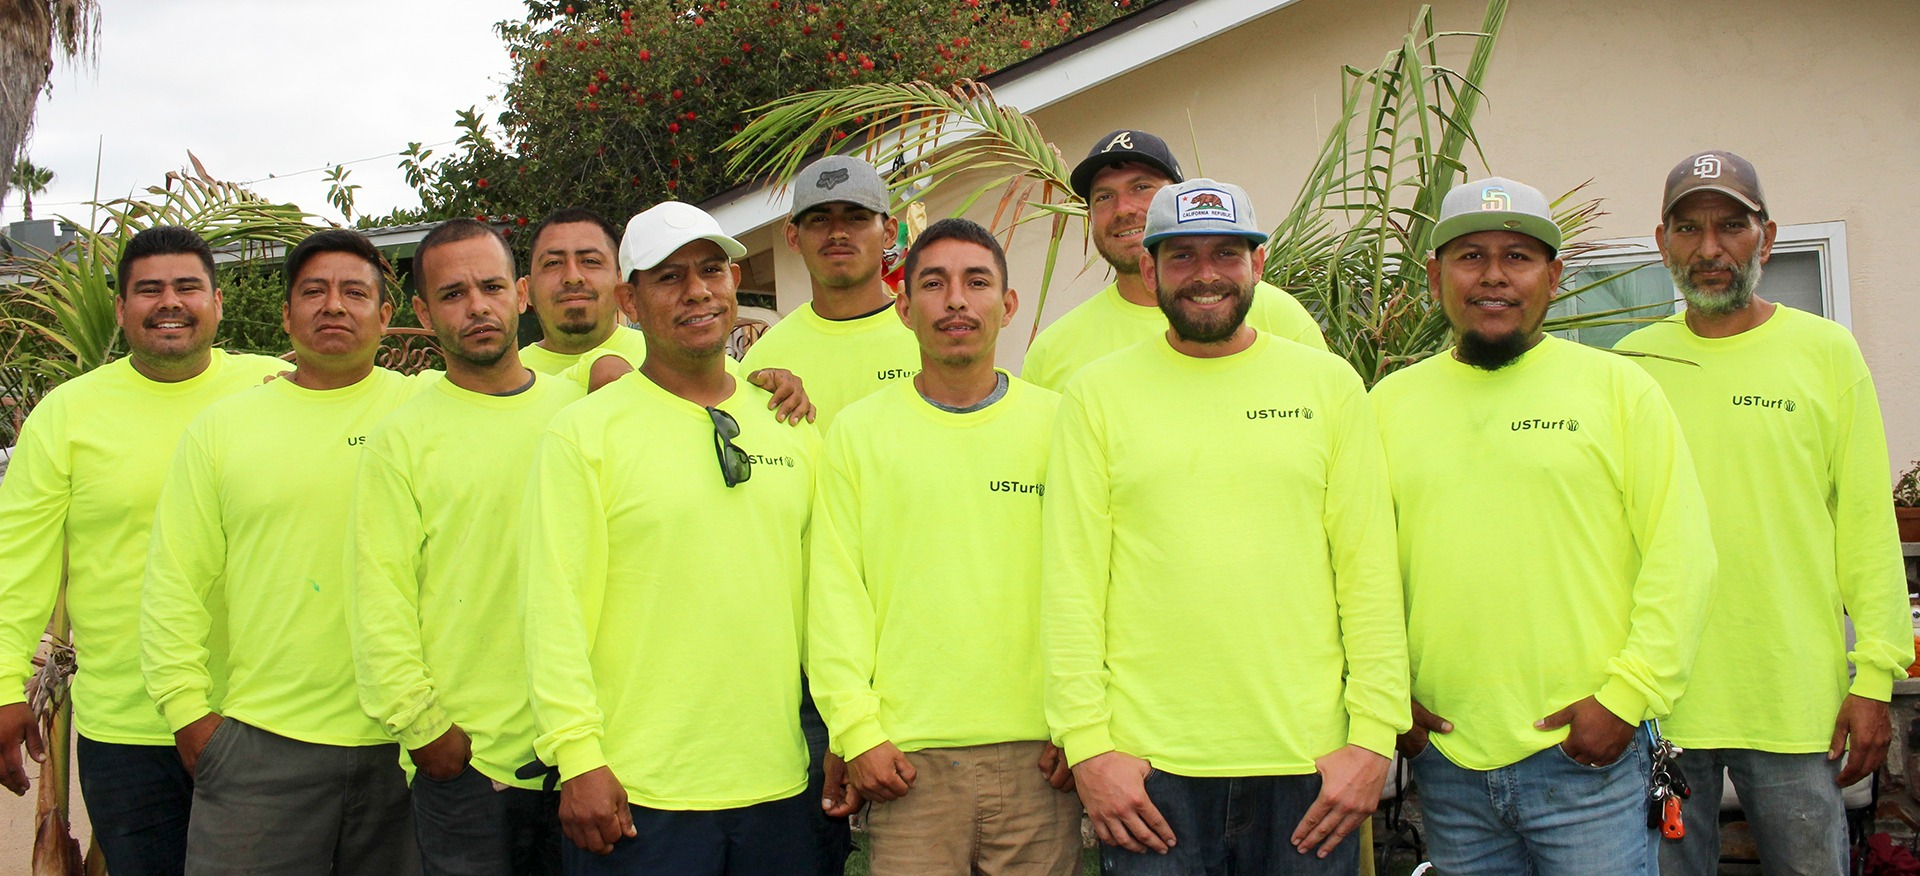 US Turf San Diego installation team photo